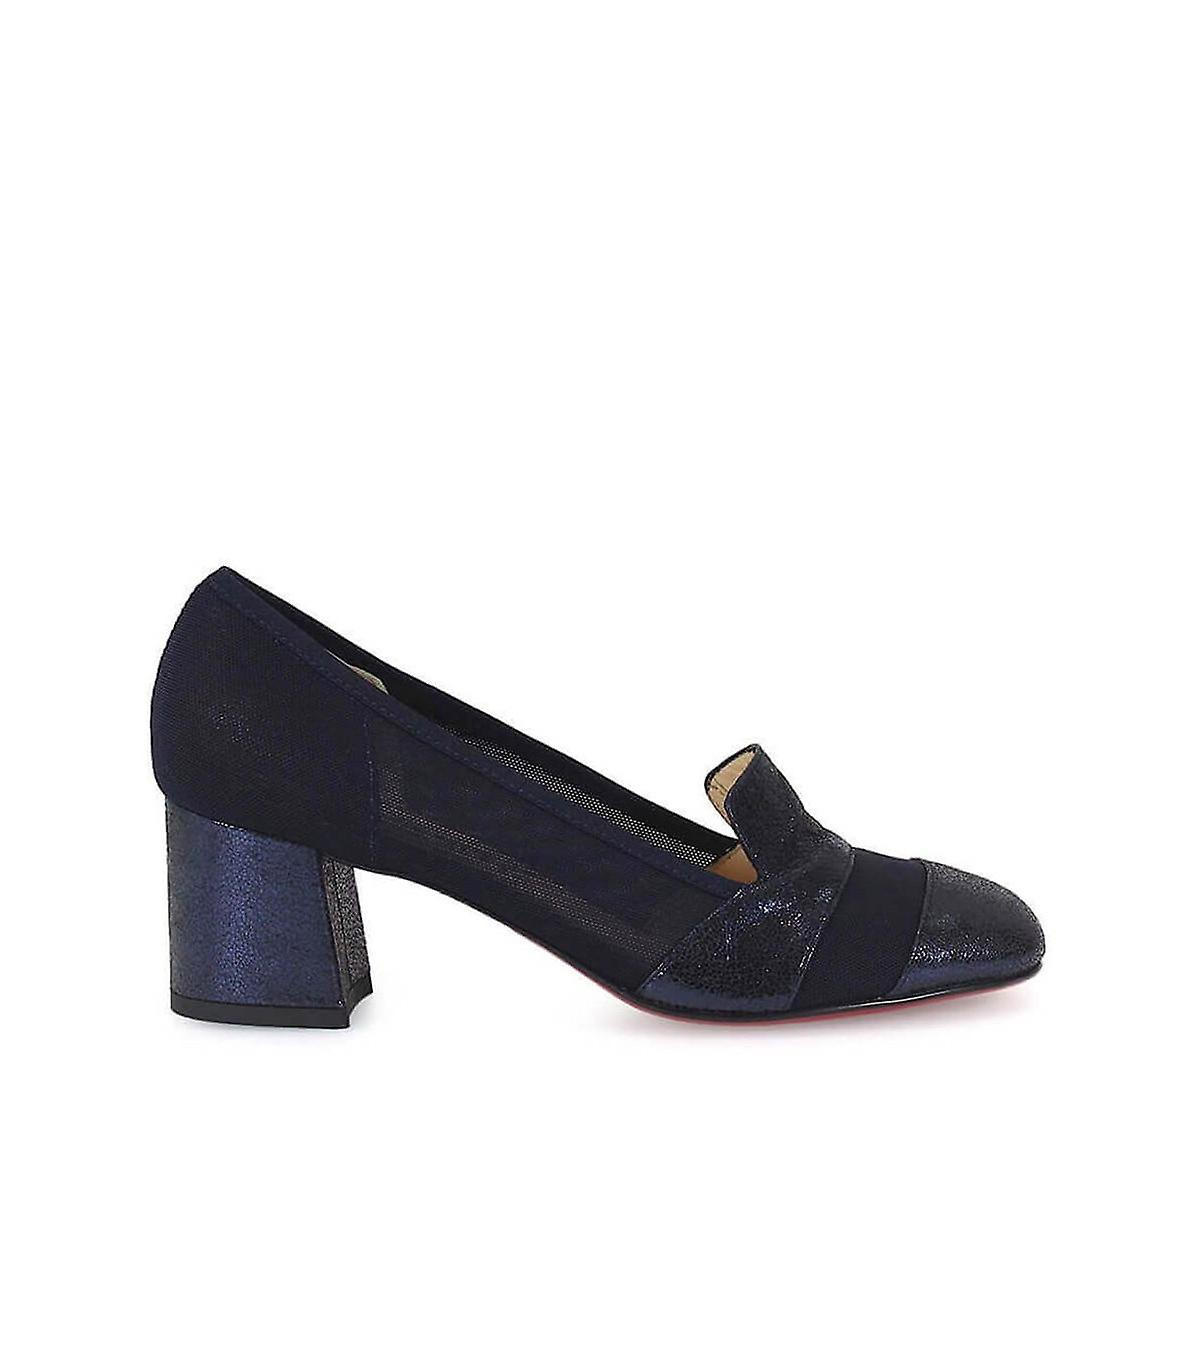 FRANCO COLLI DARK BLUE HEELED LOAFERS